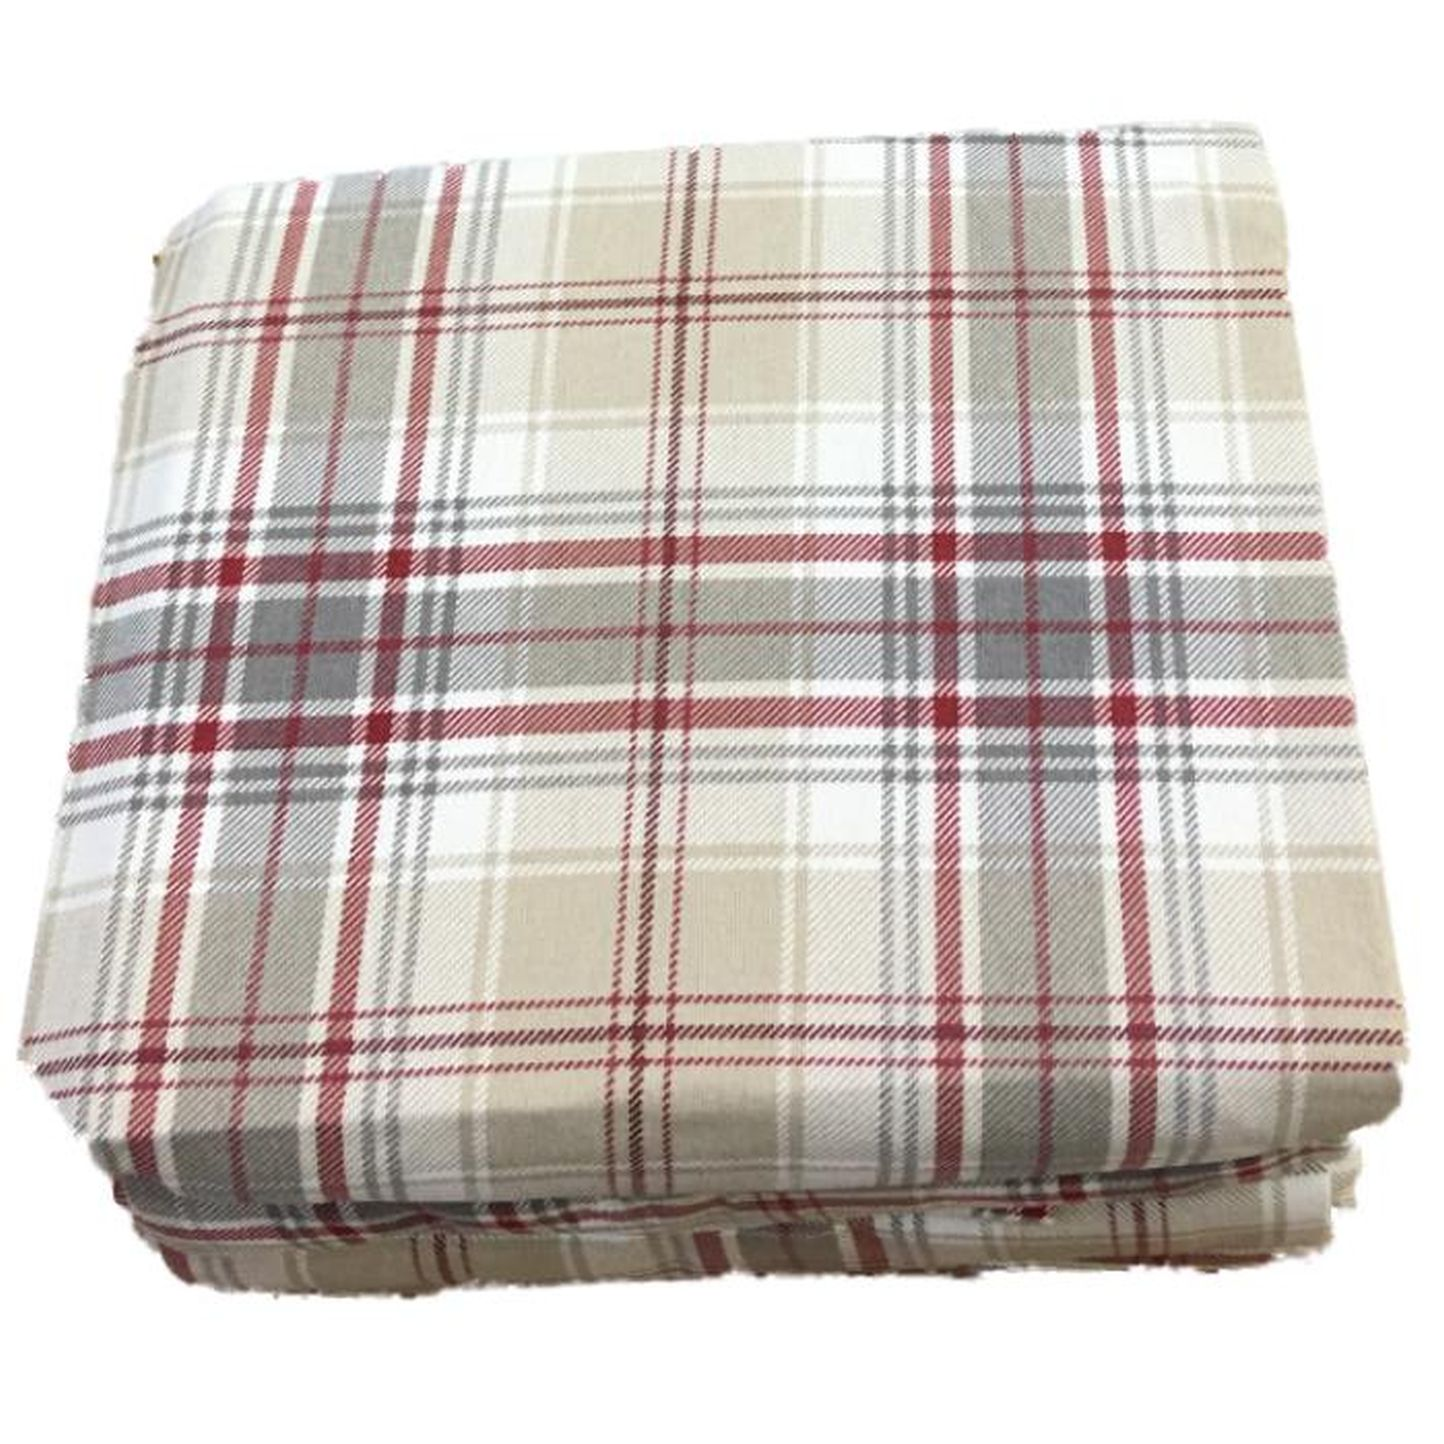 Cuddle Duds Tan U0026 Red Plaid Flannel Sheet Set Queen Bed Sheets Bedding